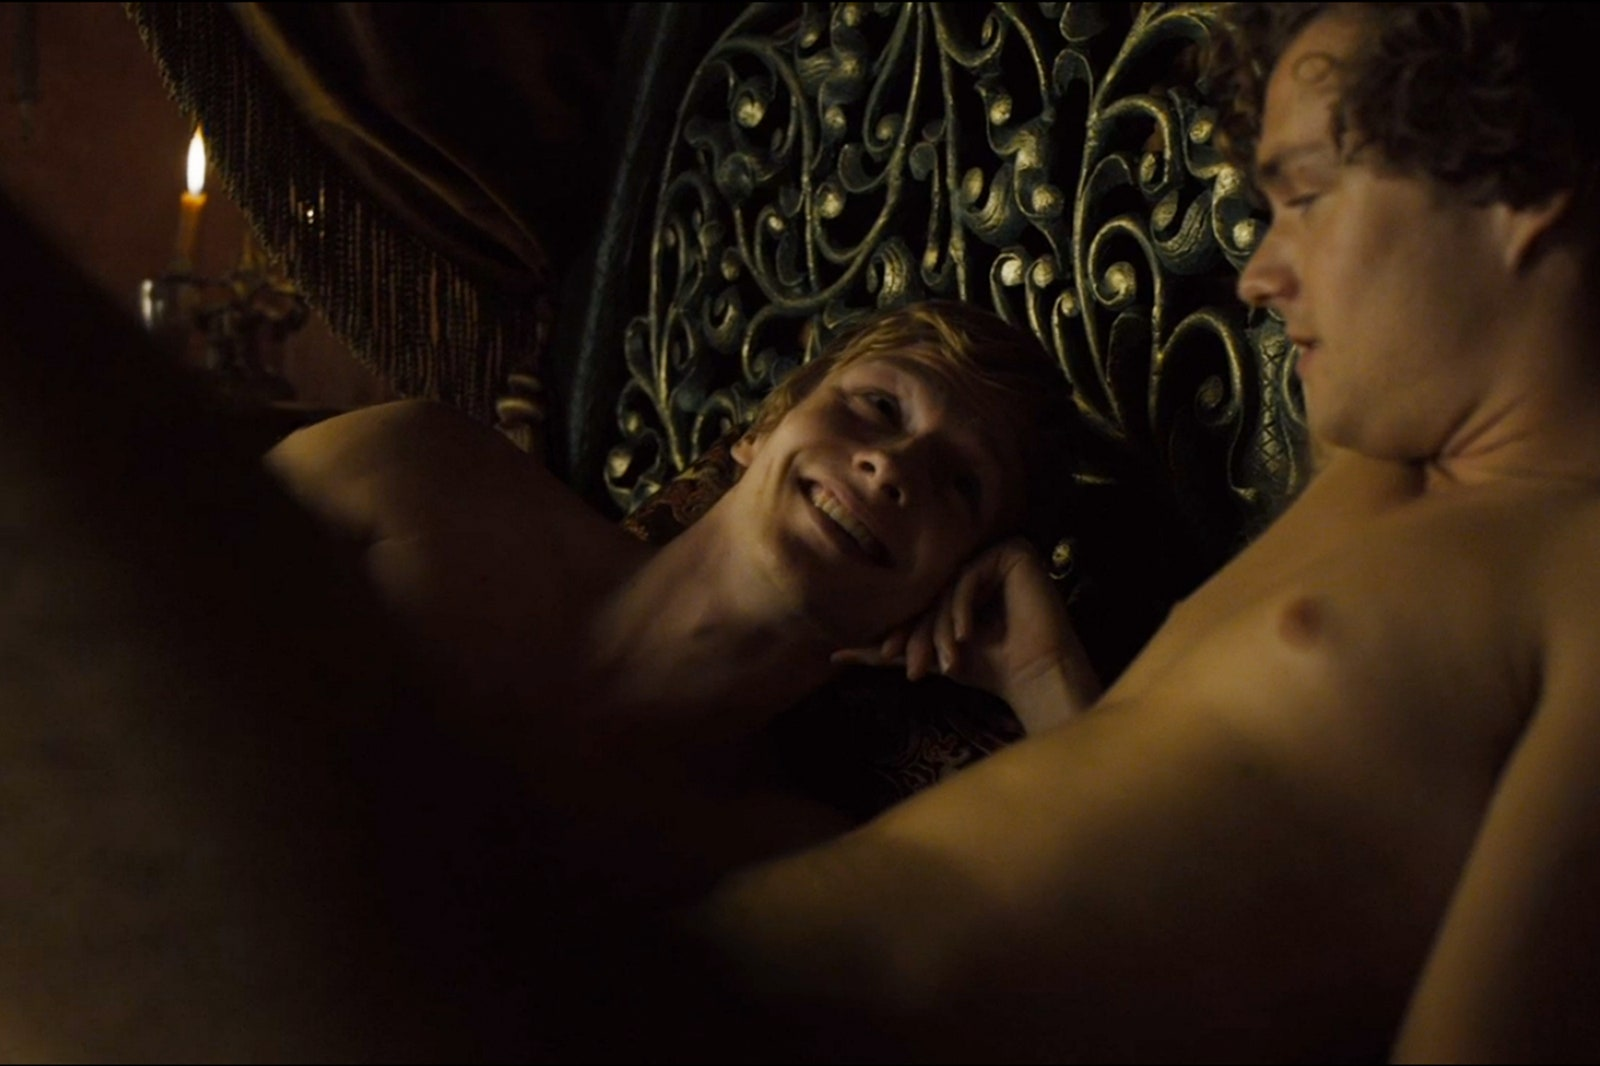 Game of thrones nudity and sex collection watch photo 2